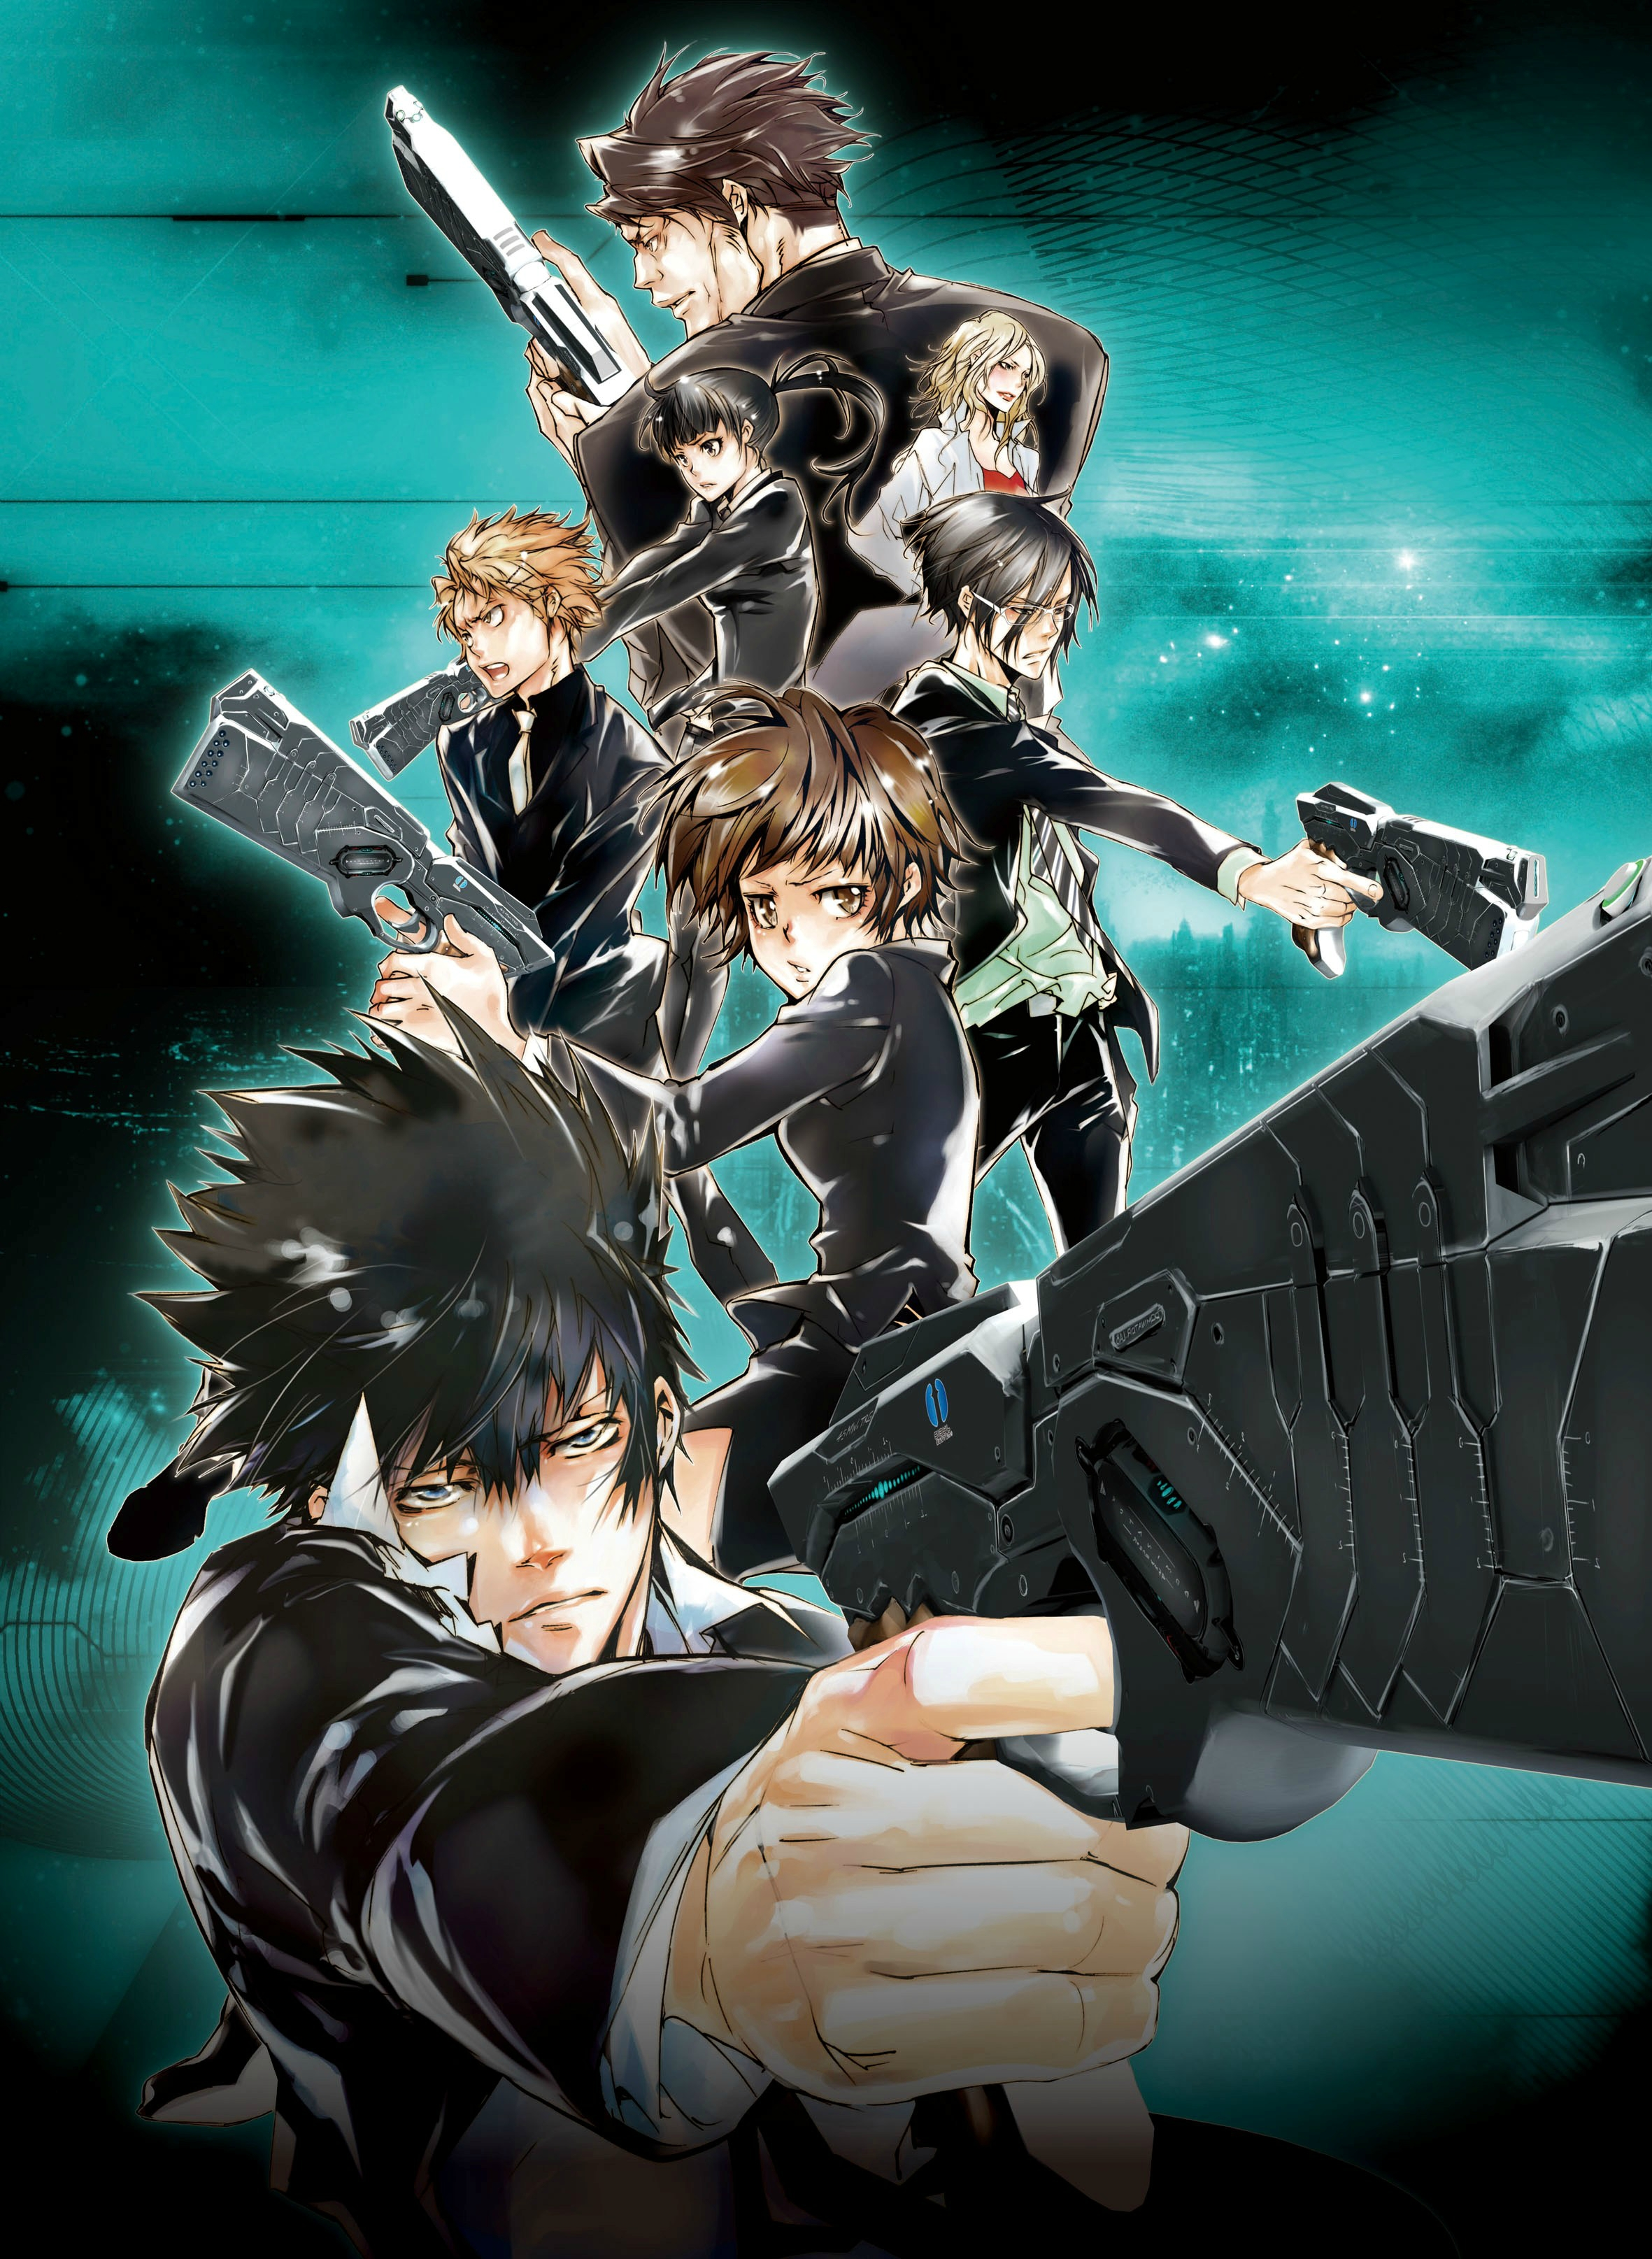 Top 10 Anime Series from NewType's May 2015 Issue psycho-pass